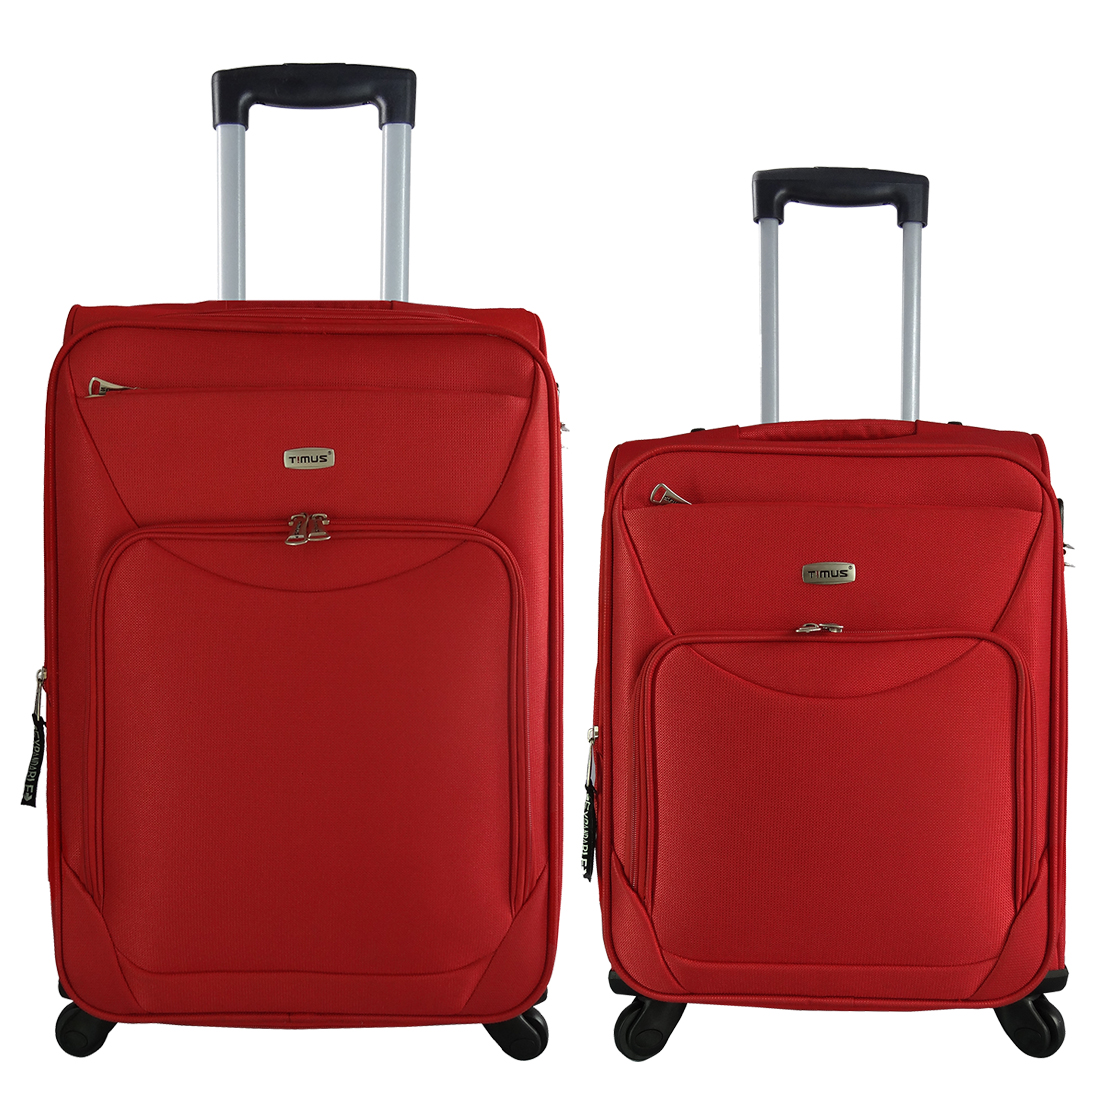 Timus Upbeat Spinner Red 55   65 Cm 4 WheelTrolleySuitcase ExpandableCabin And Check In Luggage  24 Inch  Red